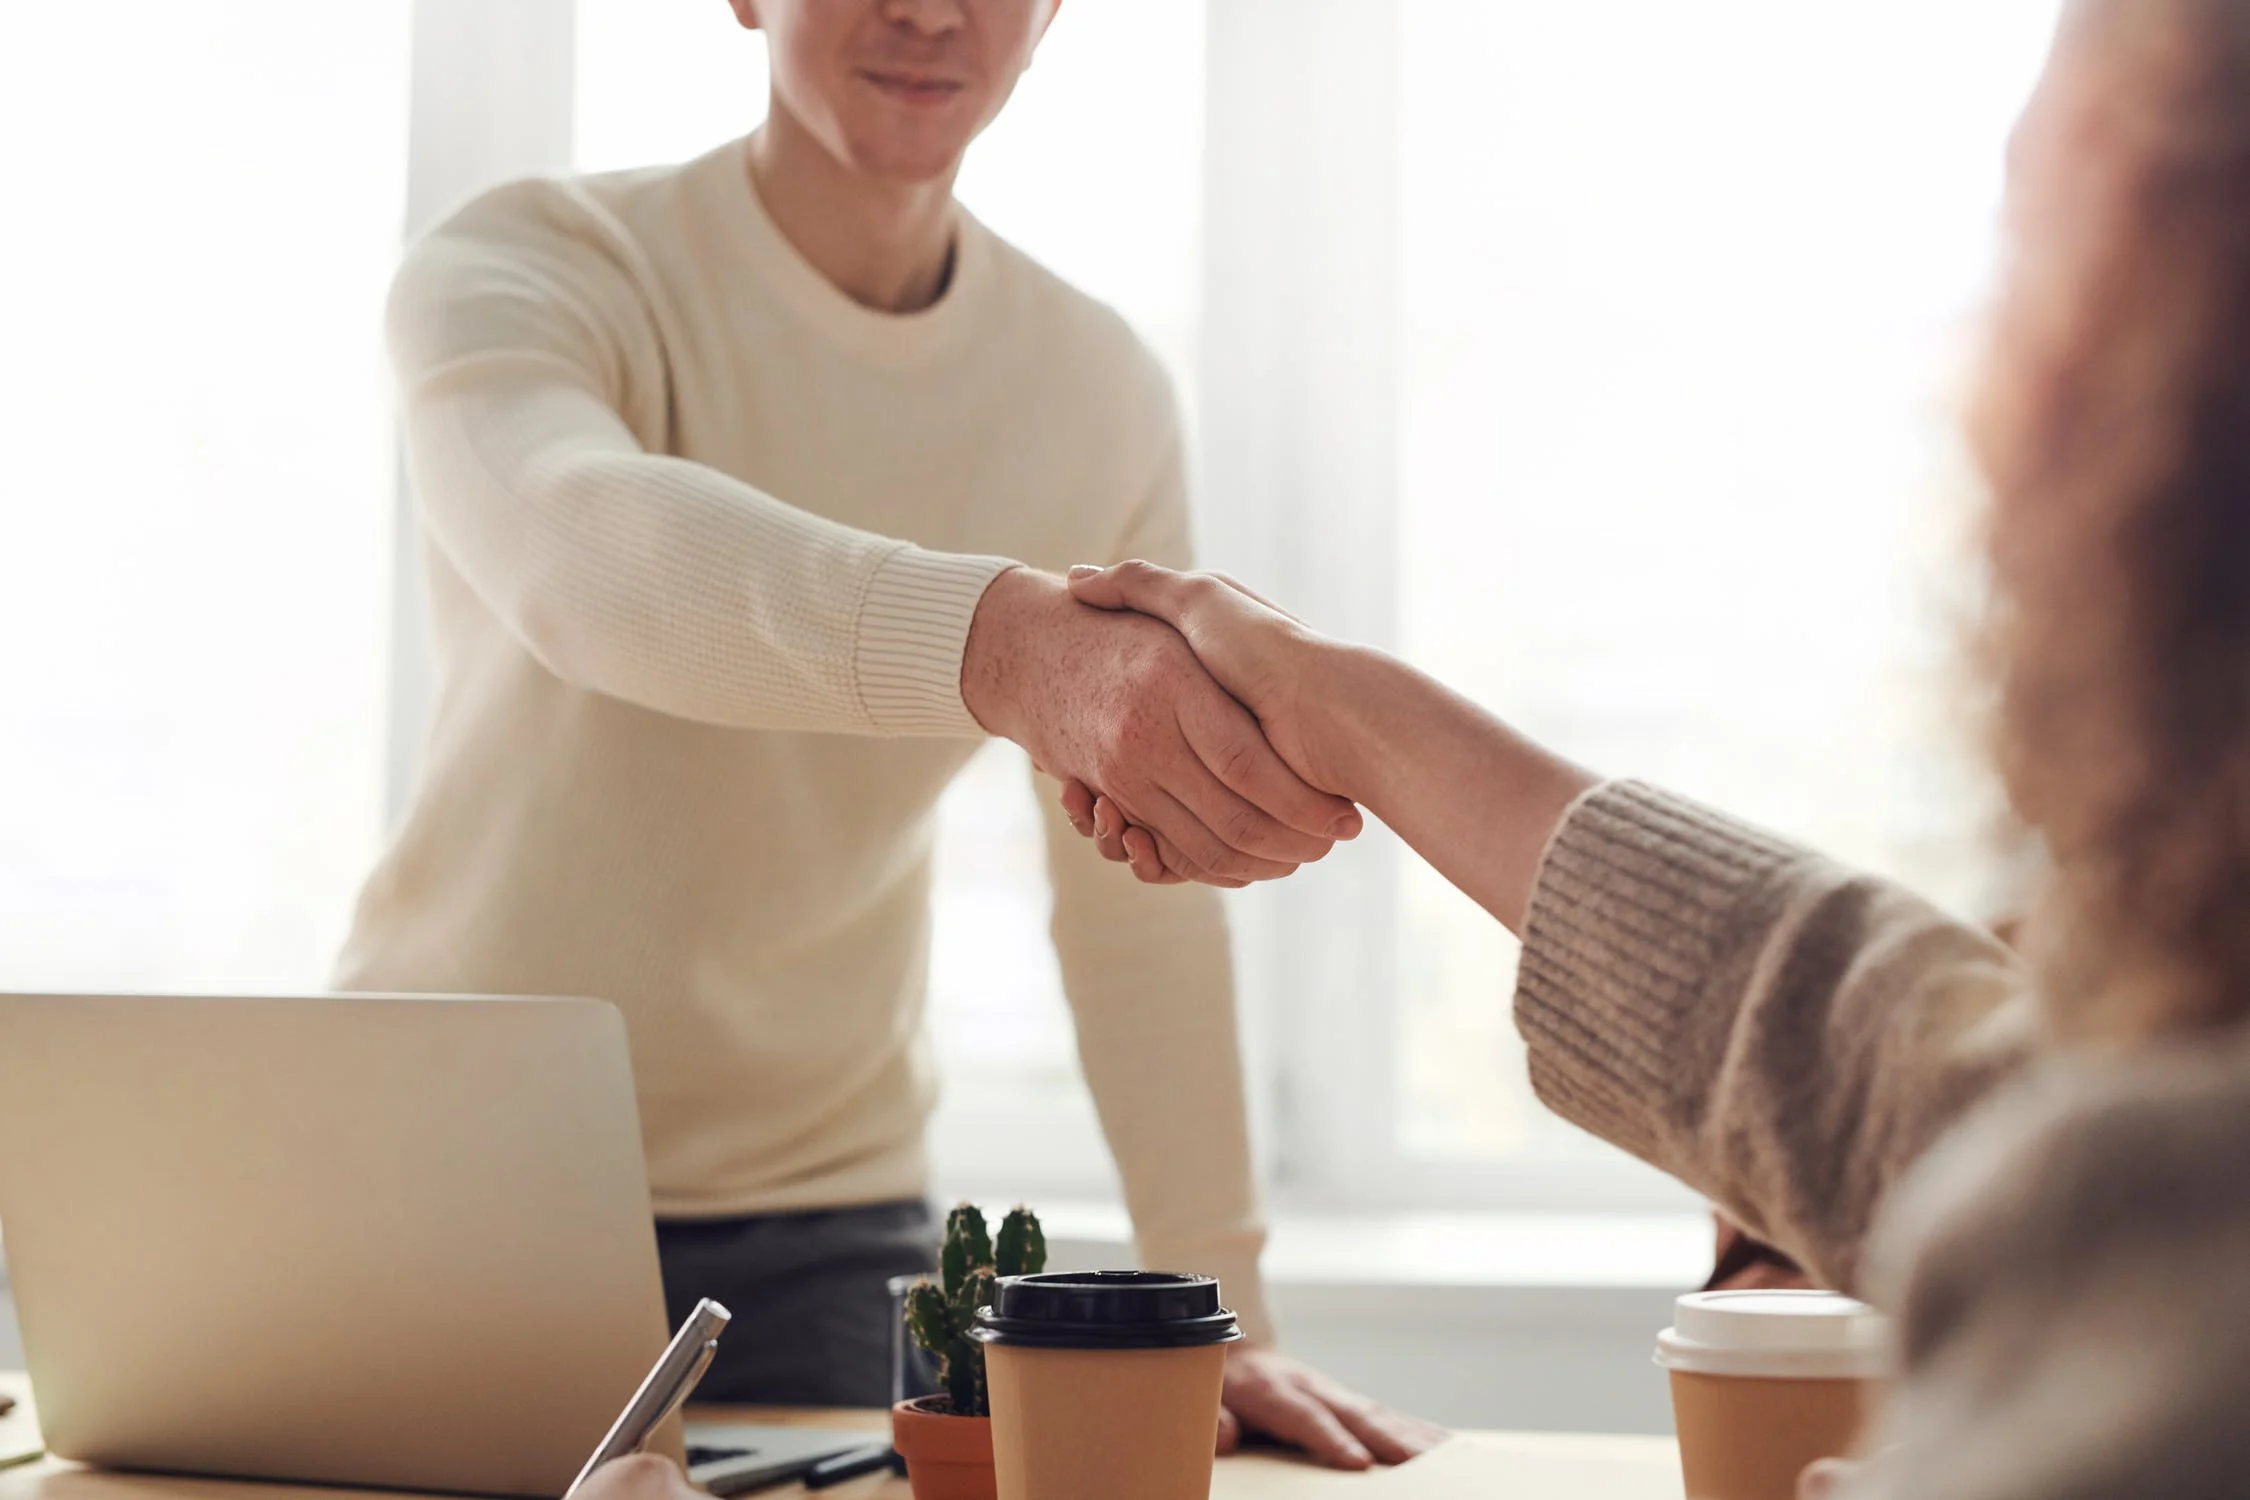 Man shaking hands with female interviewer during a job interview.